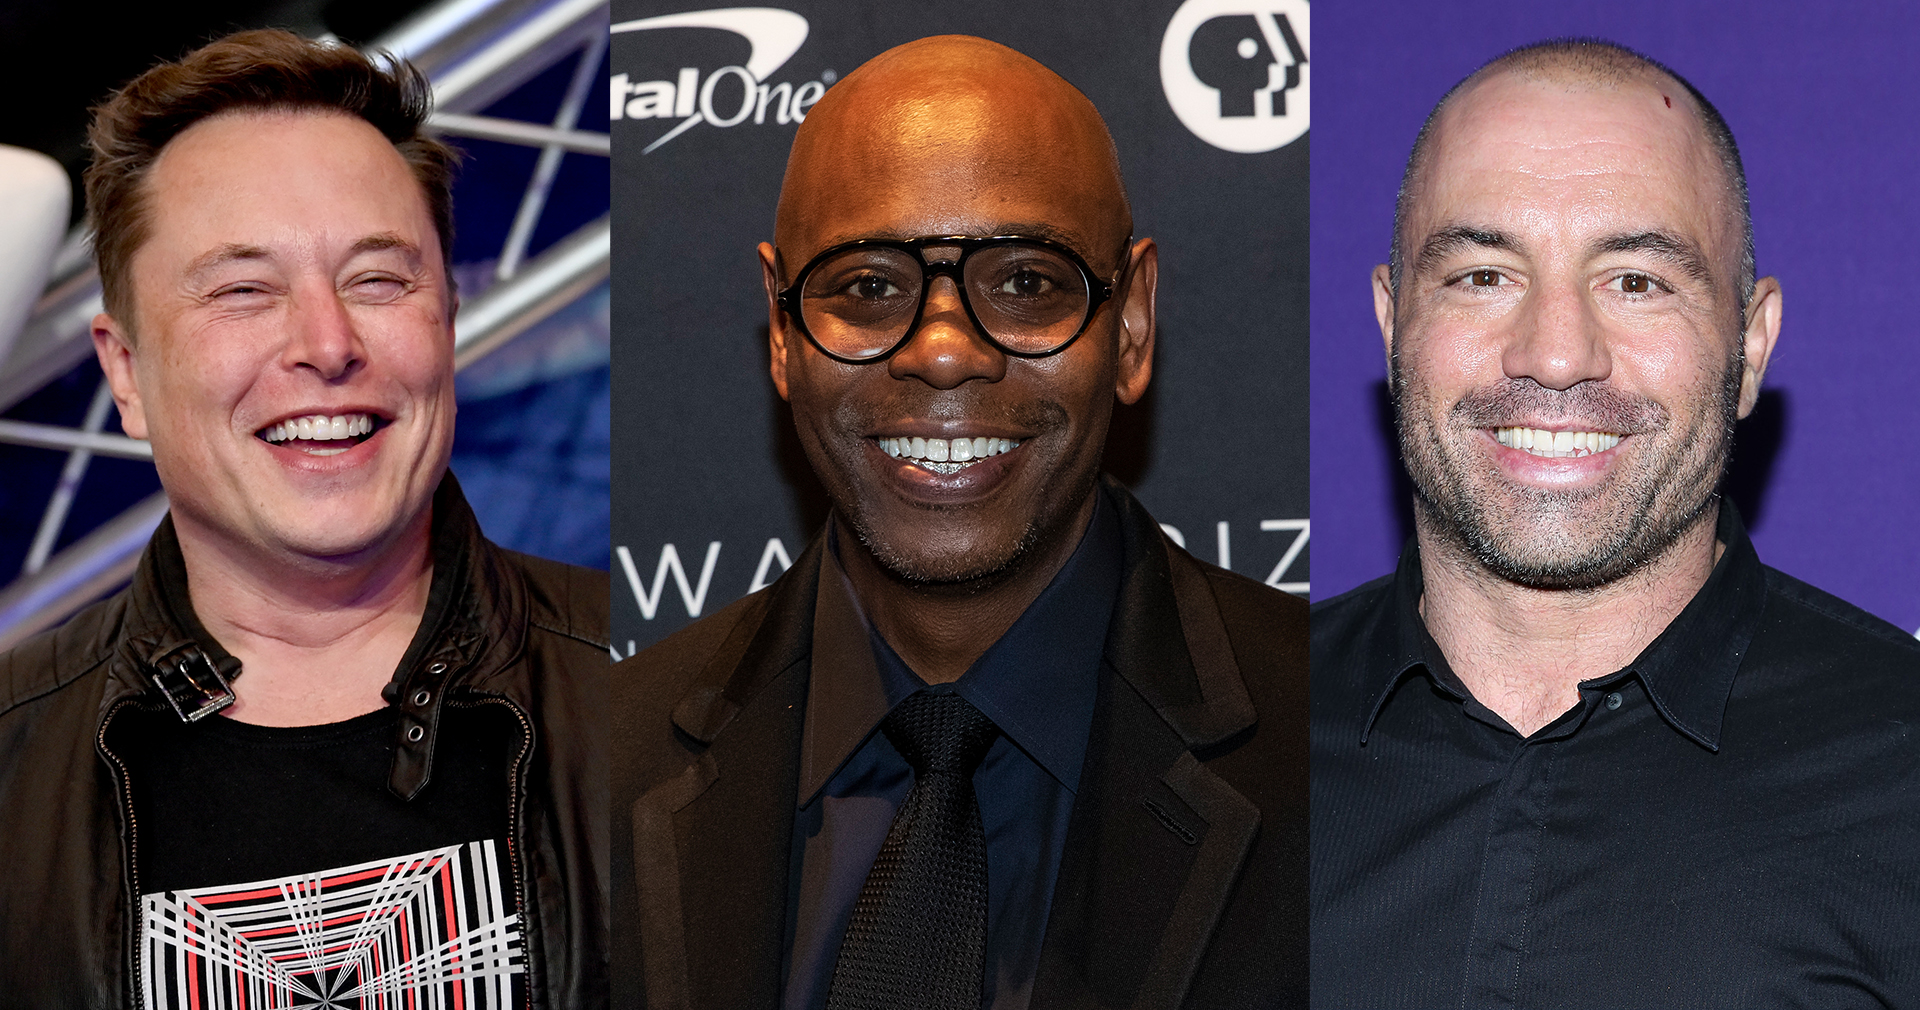 Elon Musk, Dave Chappelle and Joe Rogan (Getty Images)